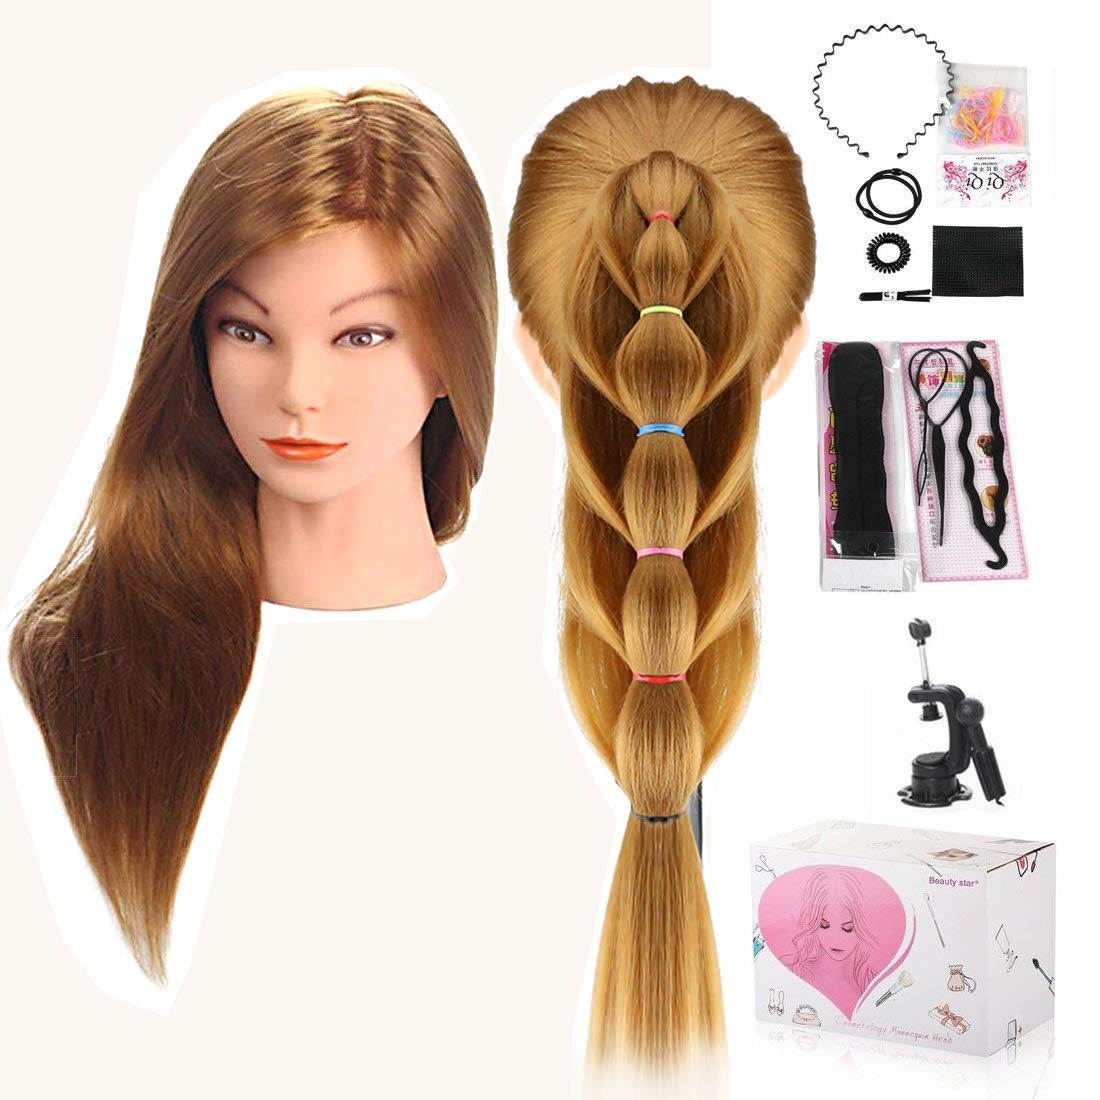 dress - World ideal stylish wigs video